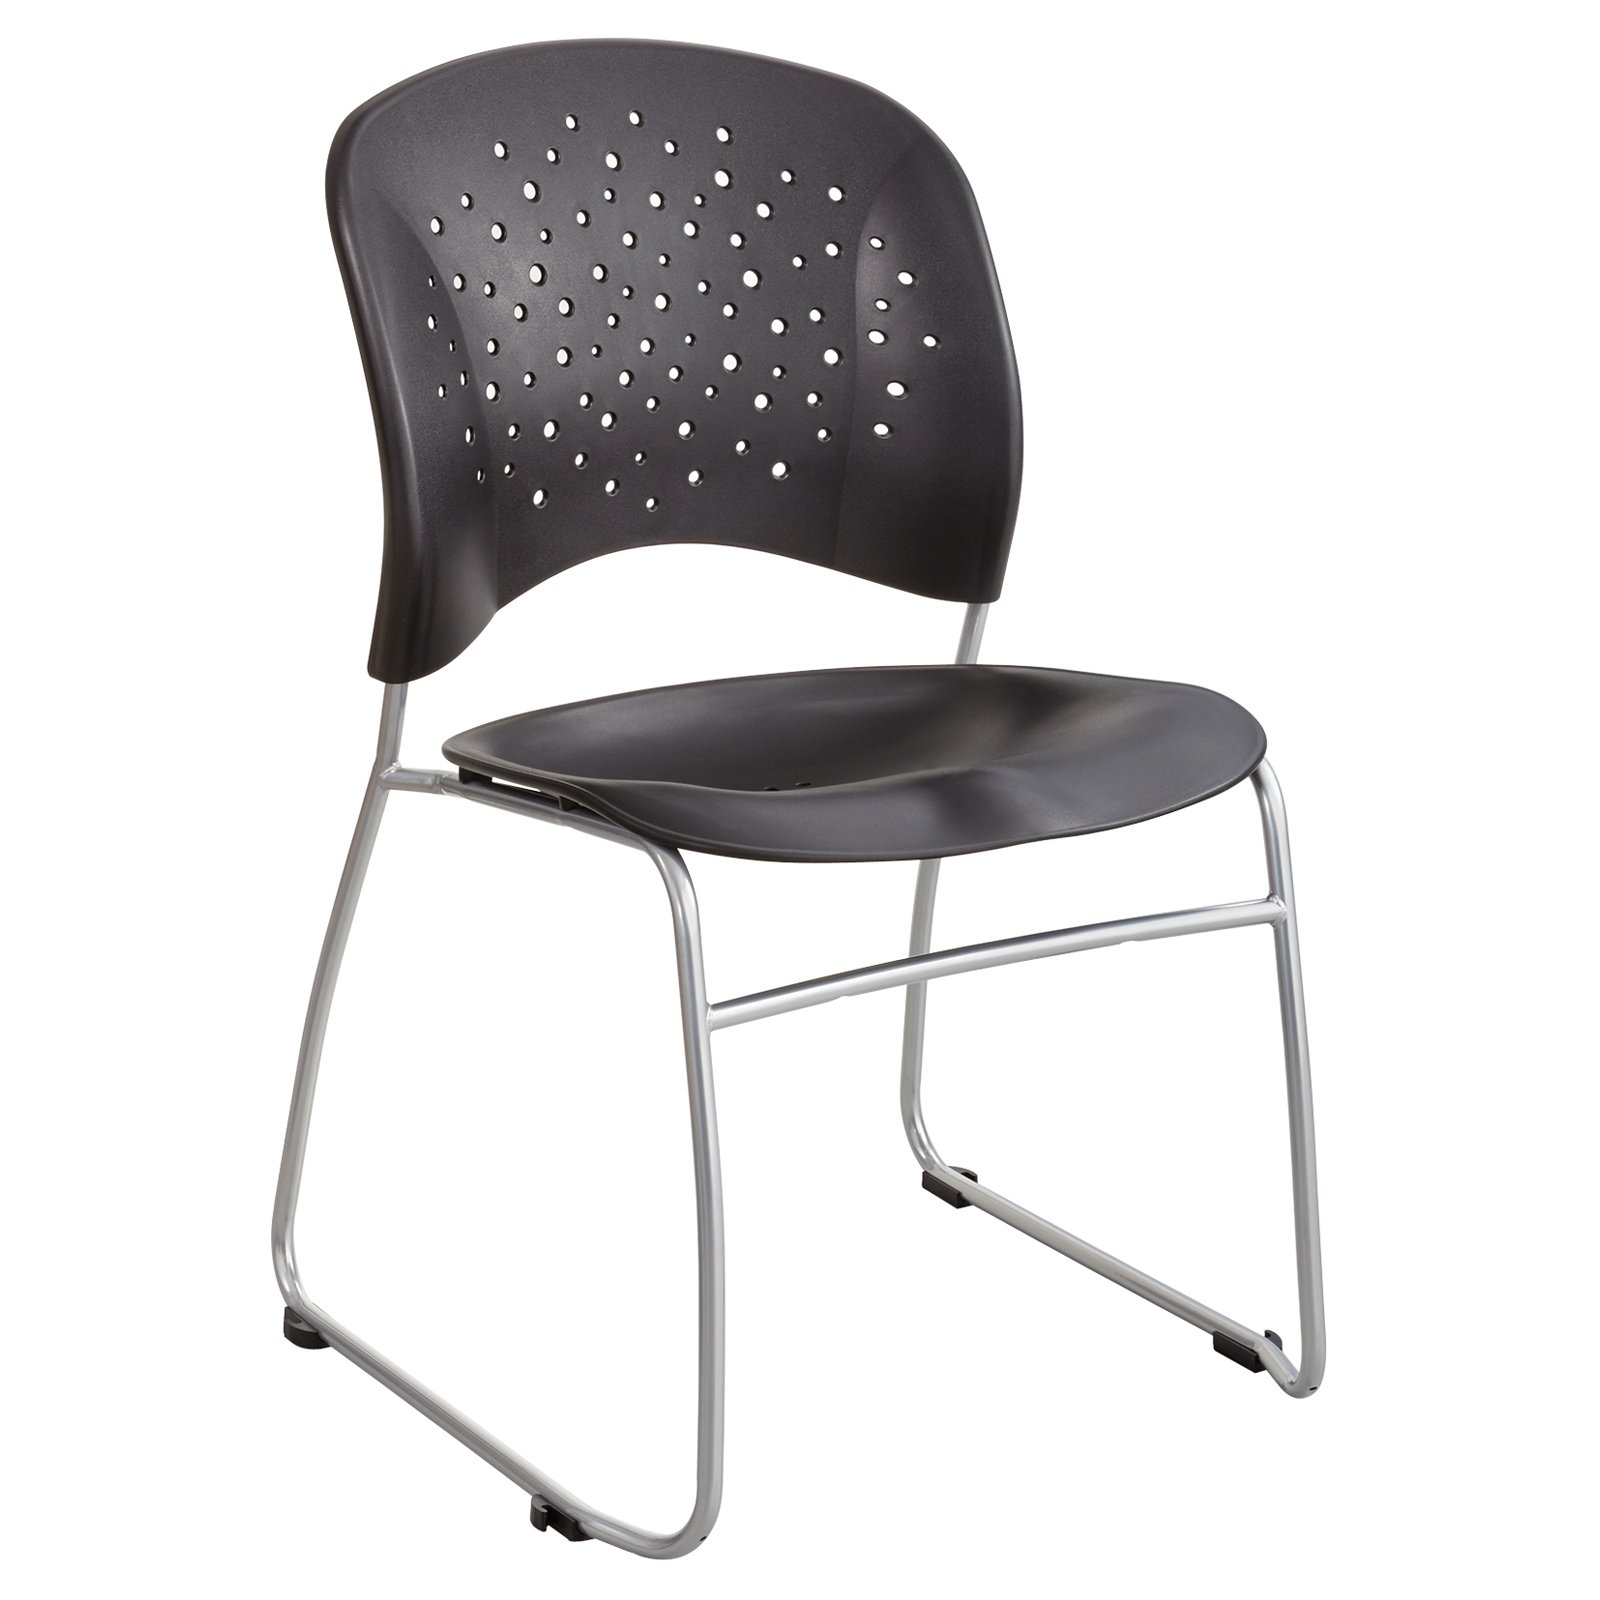 Tremendous Safco Reve Guest Chair Sled Base With Round Back Set Of 2 Uwap Interior Chair Design Uwaporg